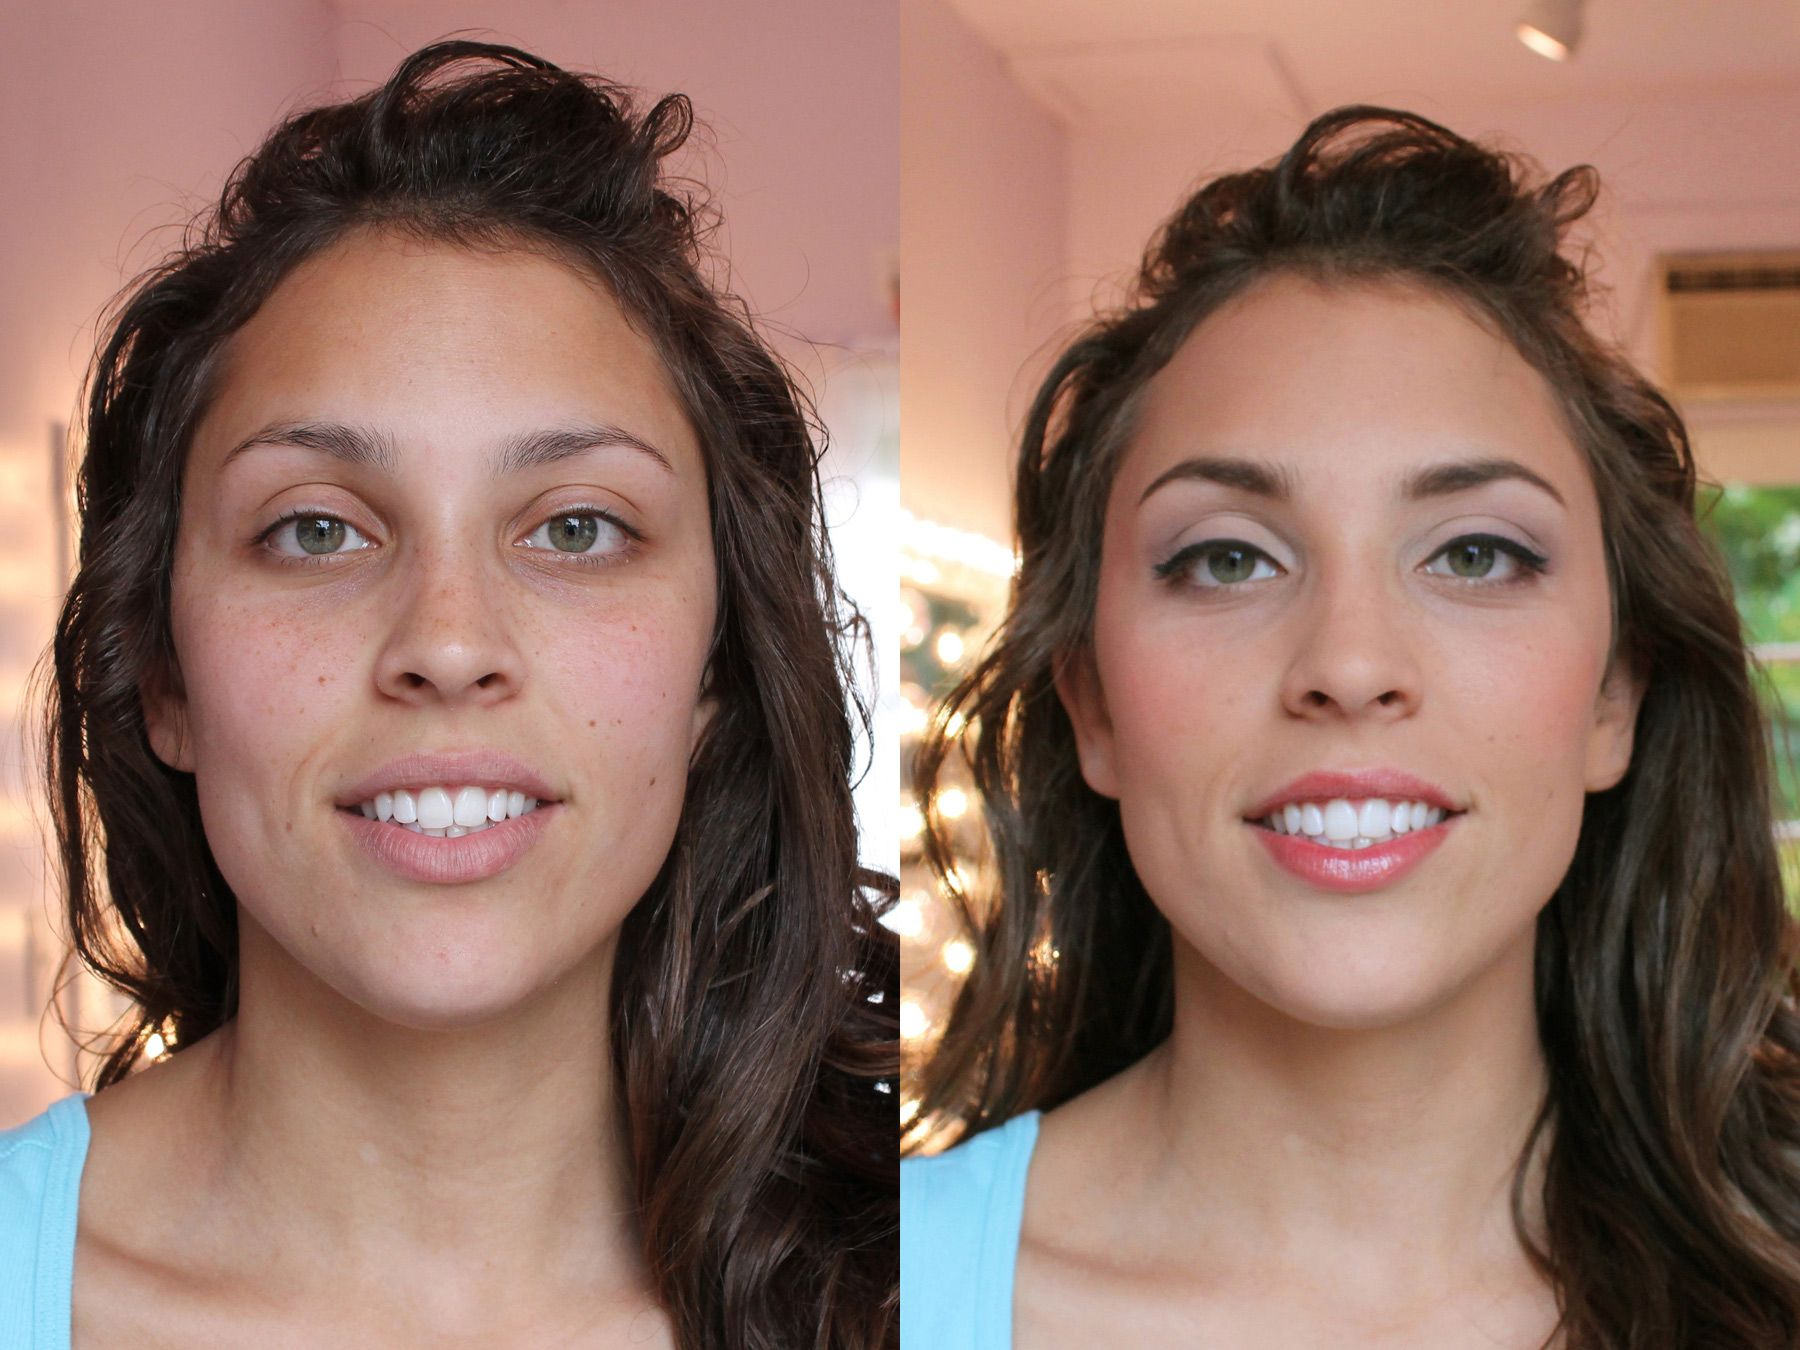 Betsy's Work Makeup before and after, Airbrush makeup